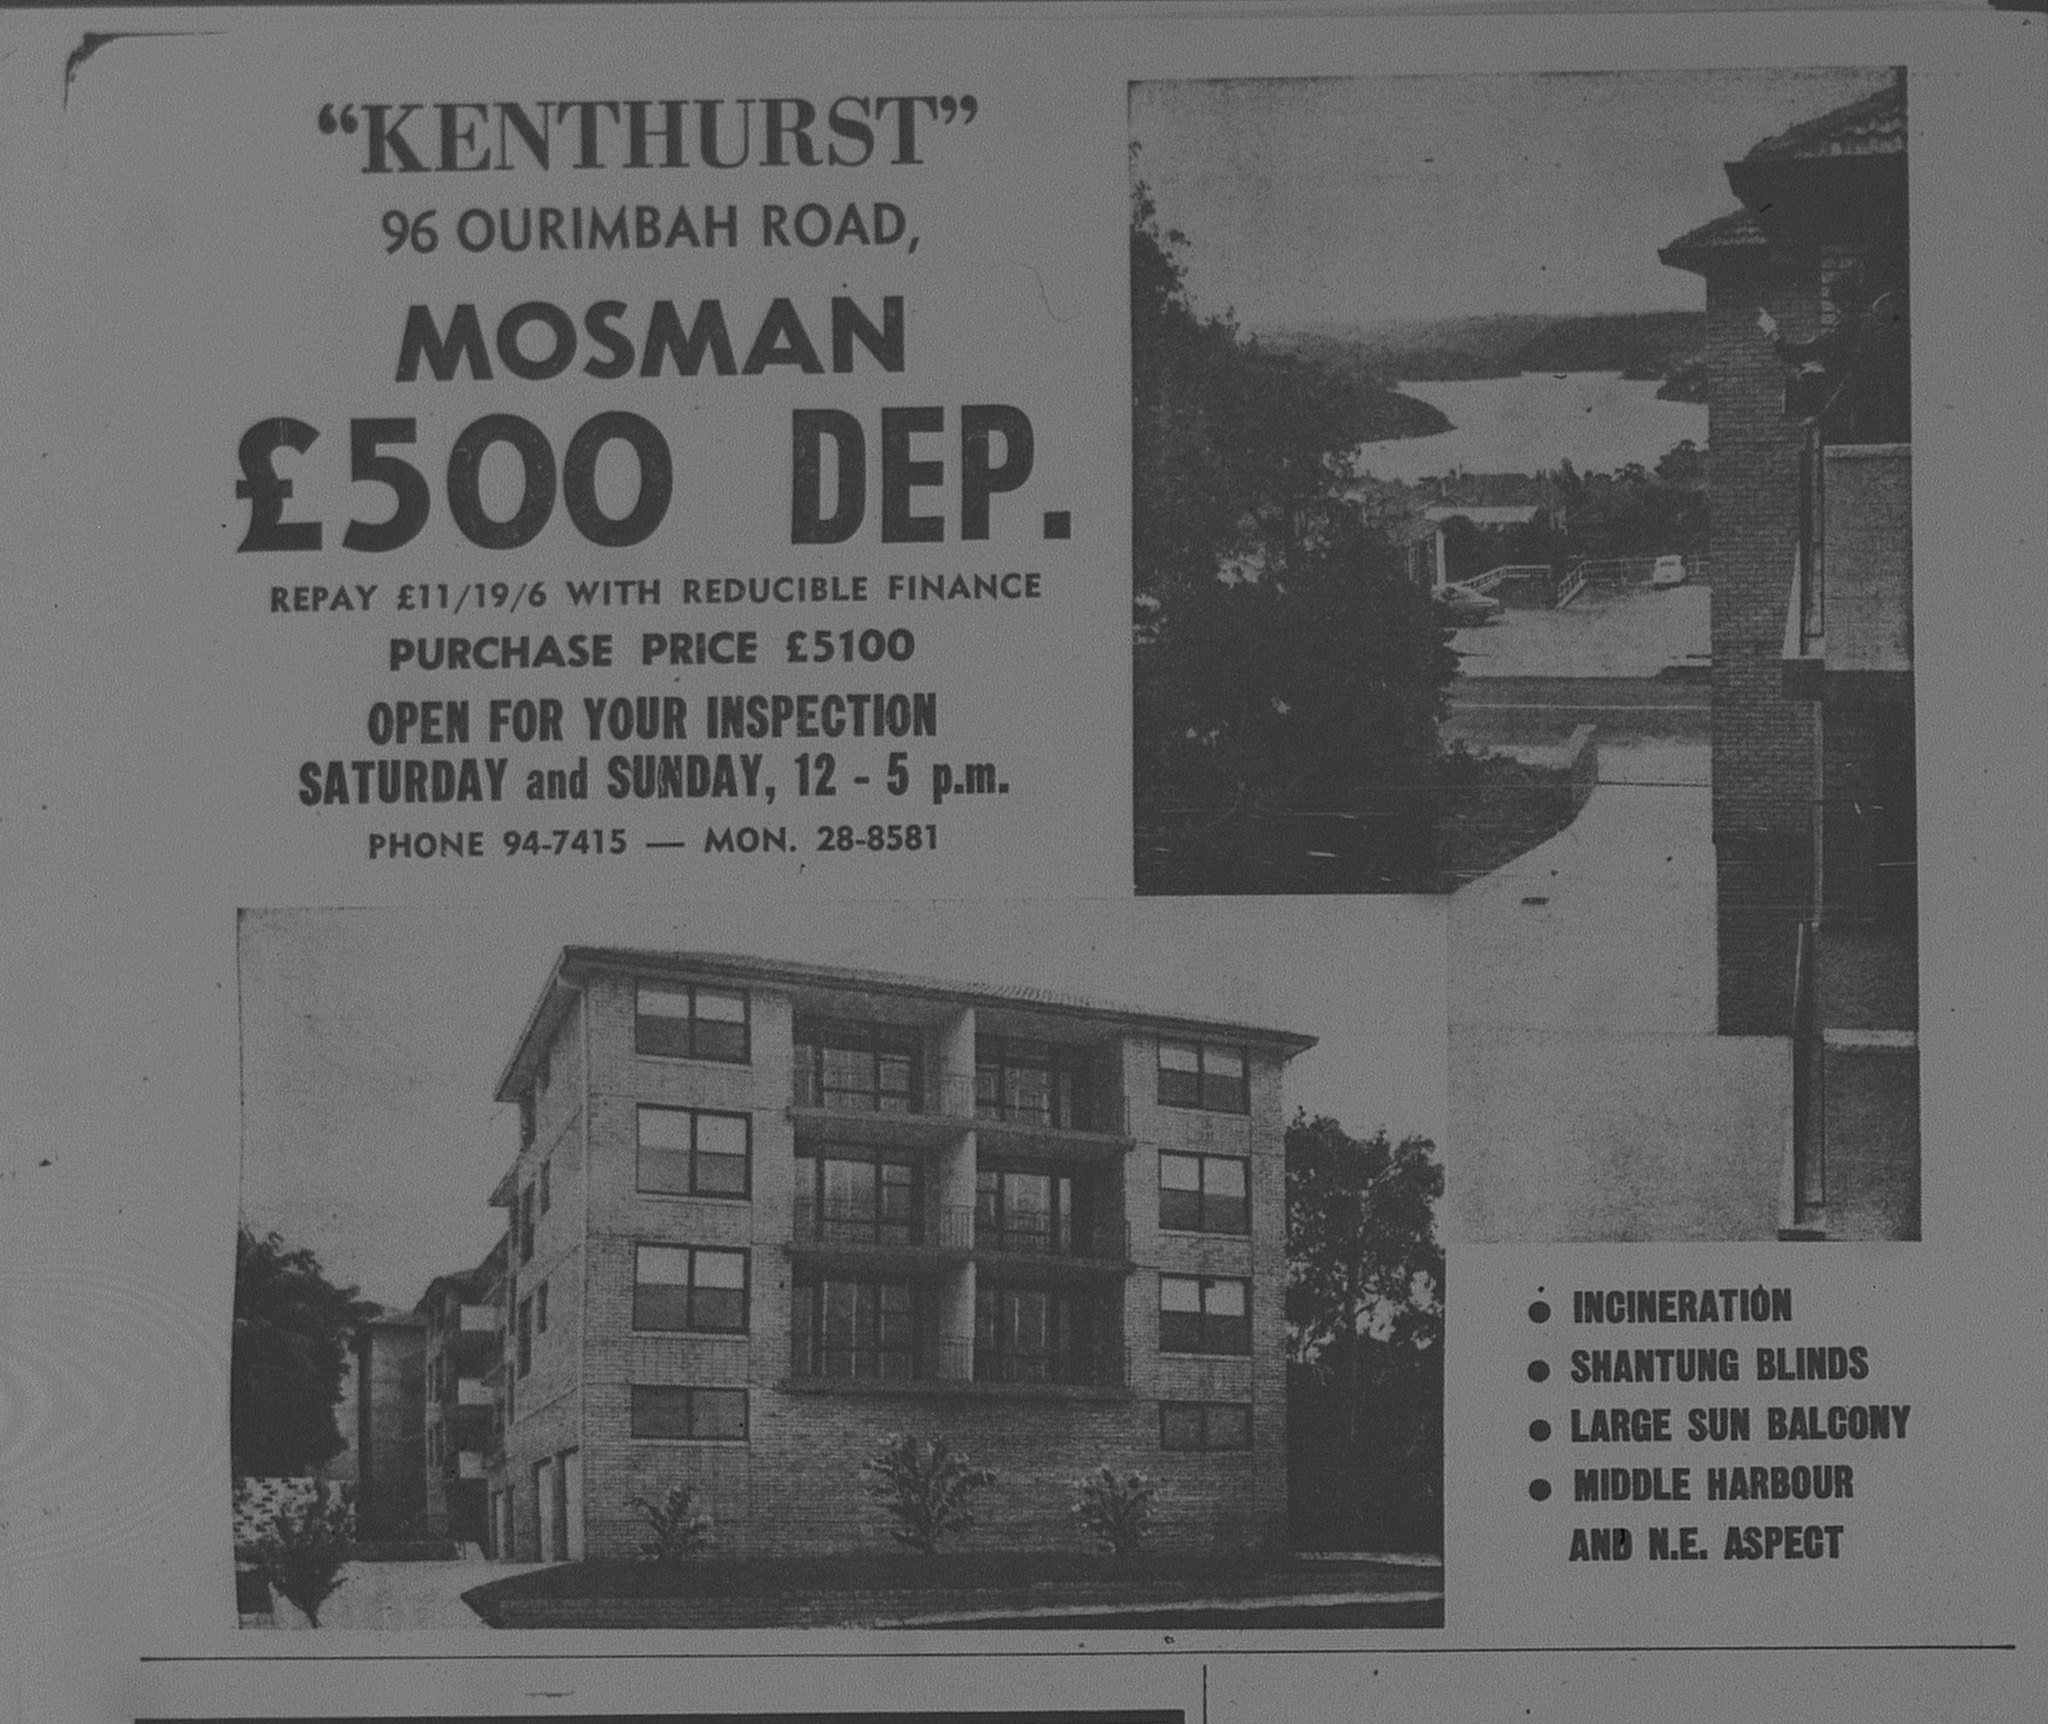 Kenthurst Mosman Ad October 14 1966 the sun 48